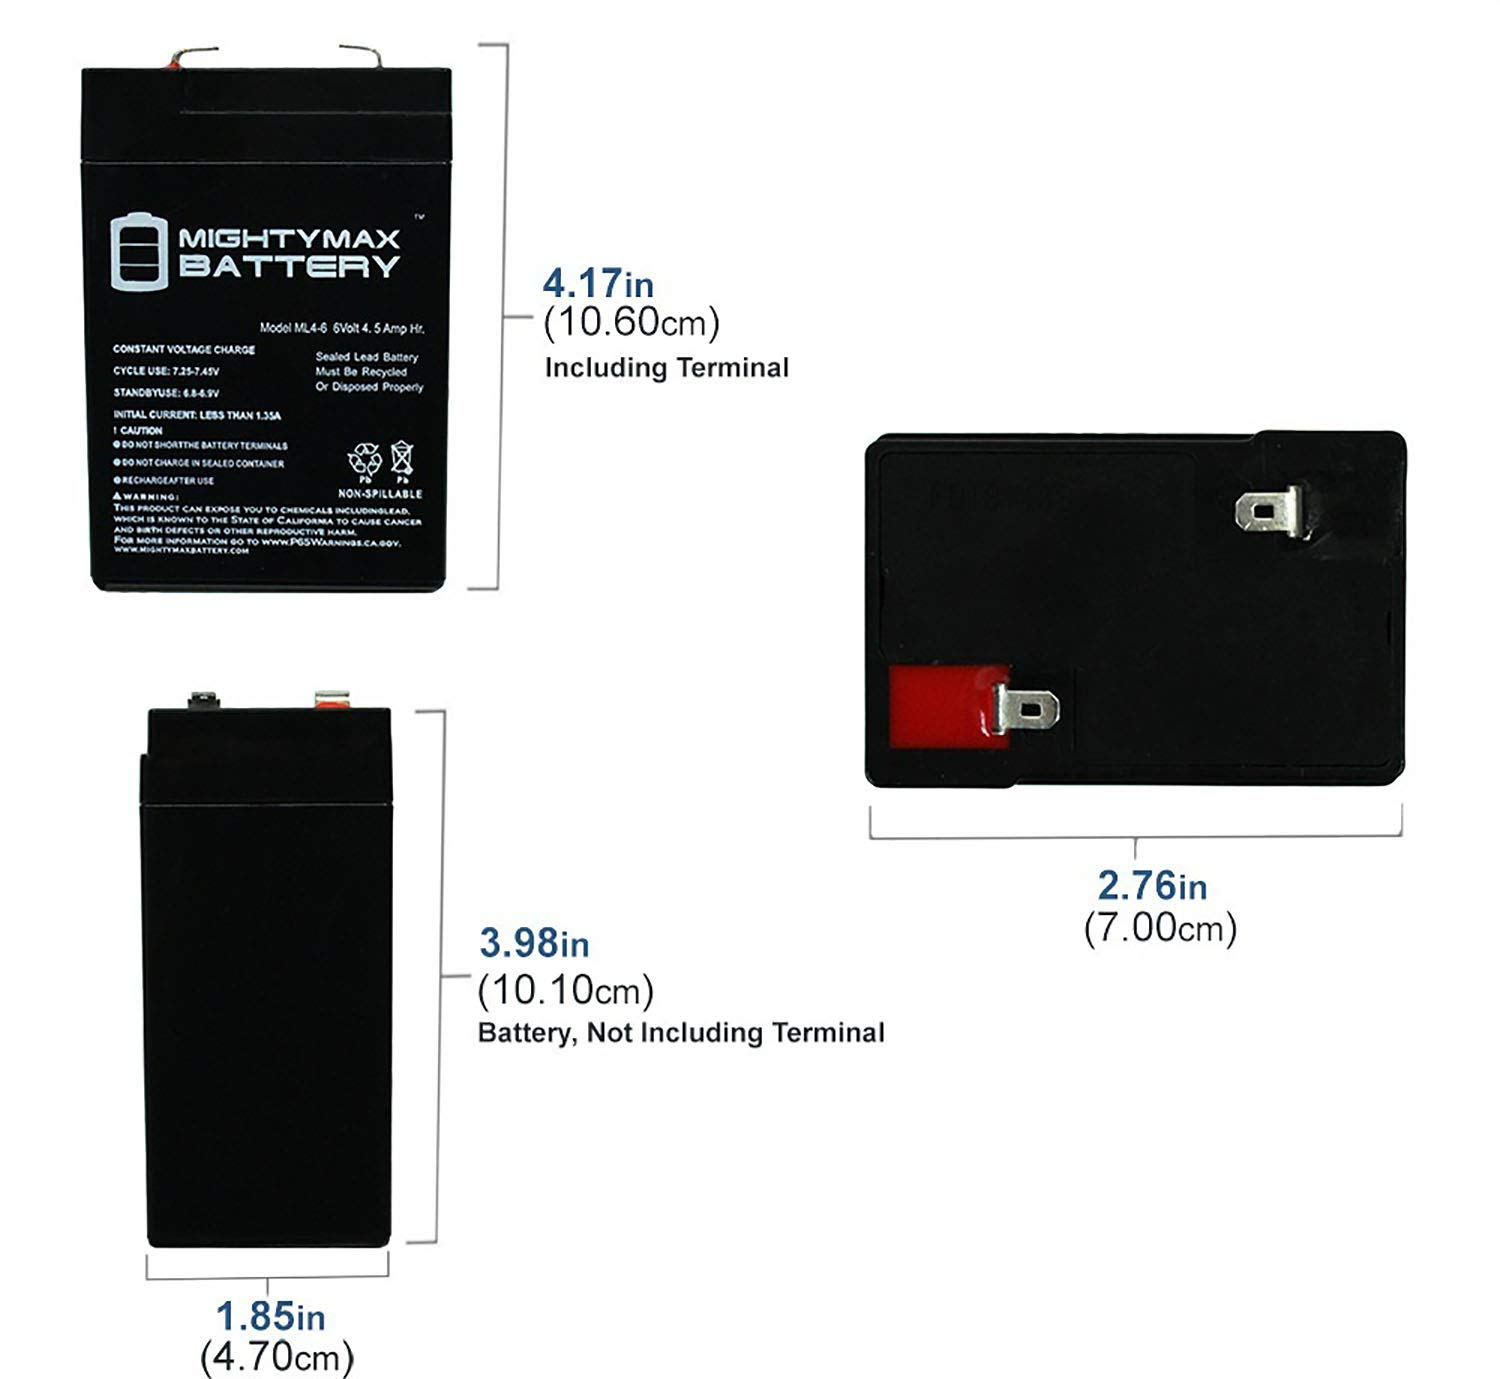 Mighty Max Battery ML4-6 - 6V 4.5AH Replacement Battery for YT-645 with F1 Terminal - 15 Pack Brand Product by Mighty Max Battery (Image #2)